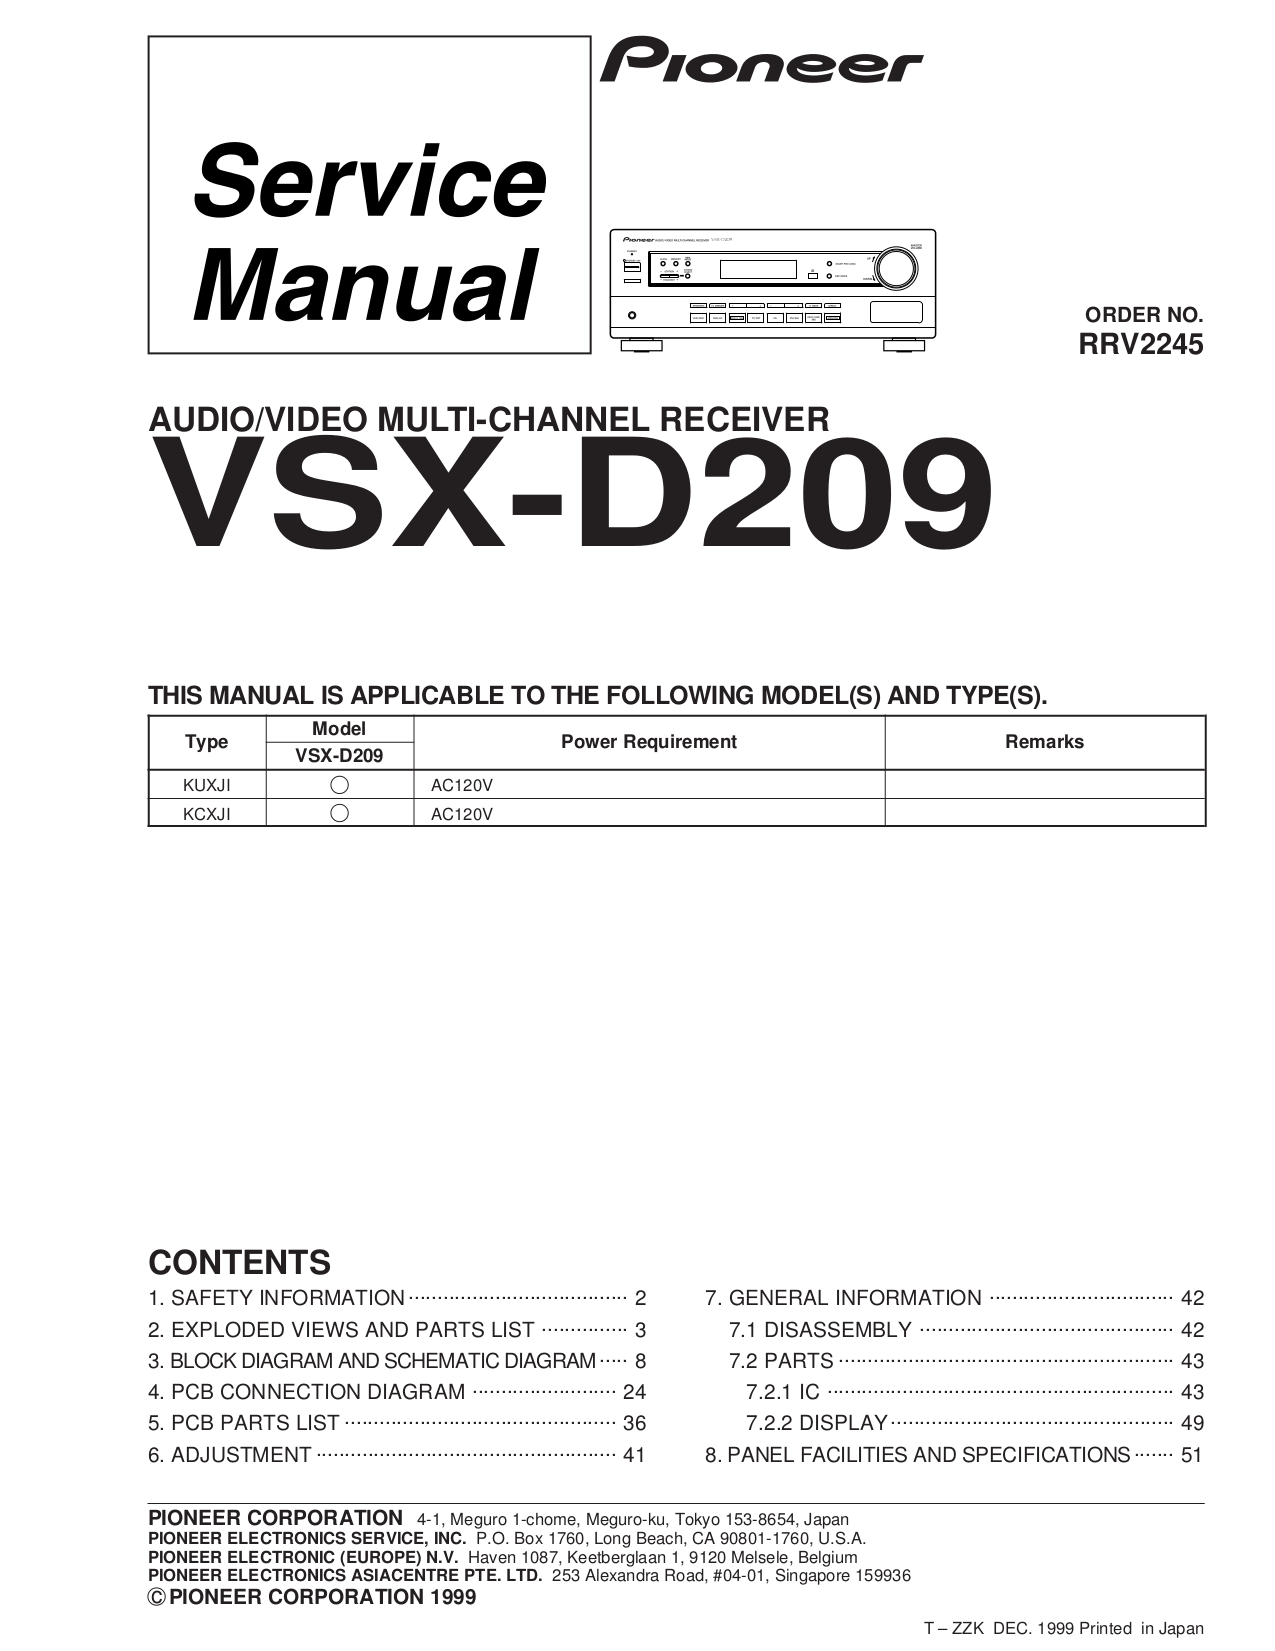 pdf for Pioneer Receiver VSX-D209 manual